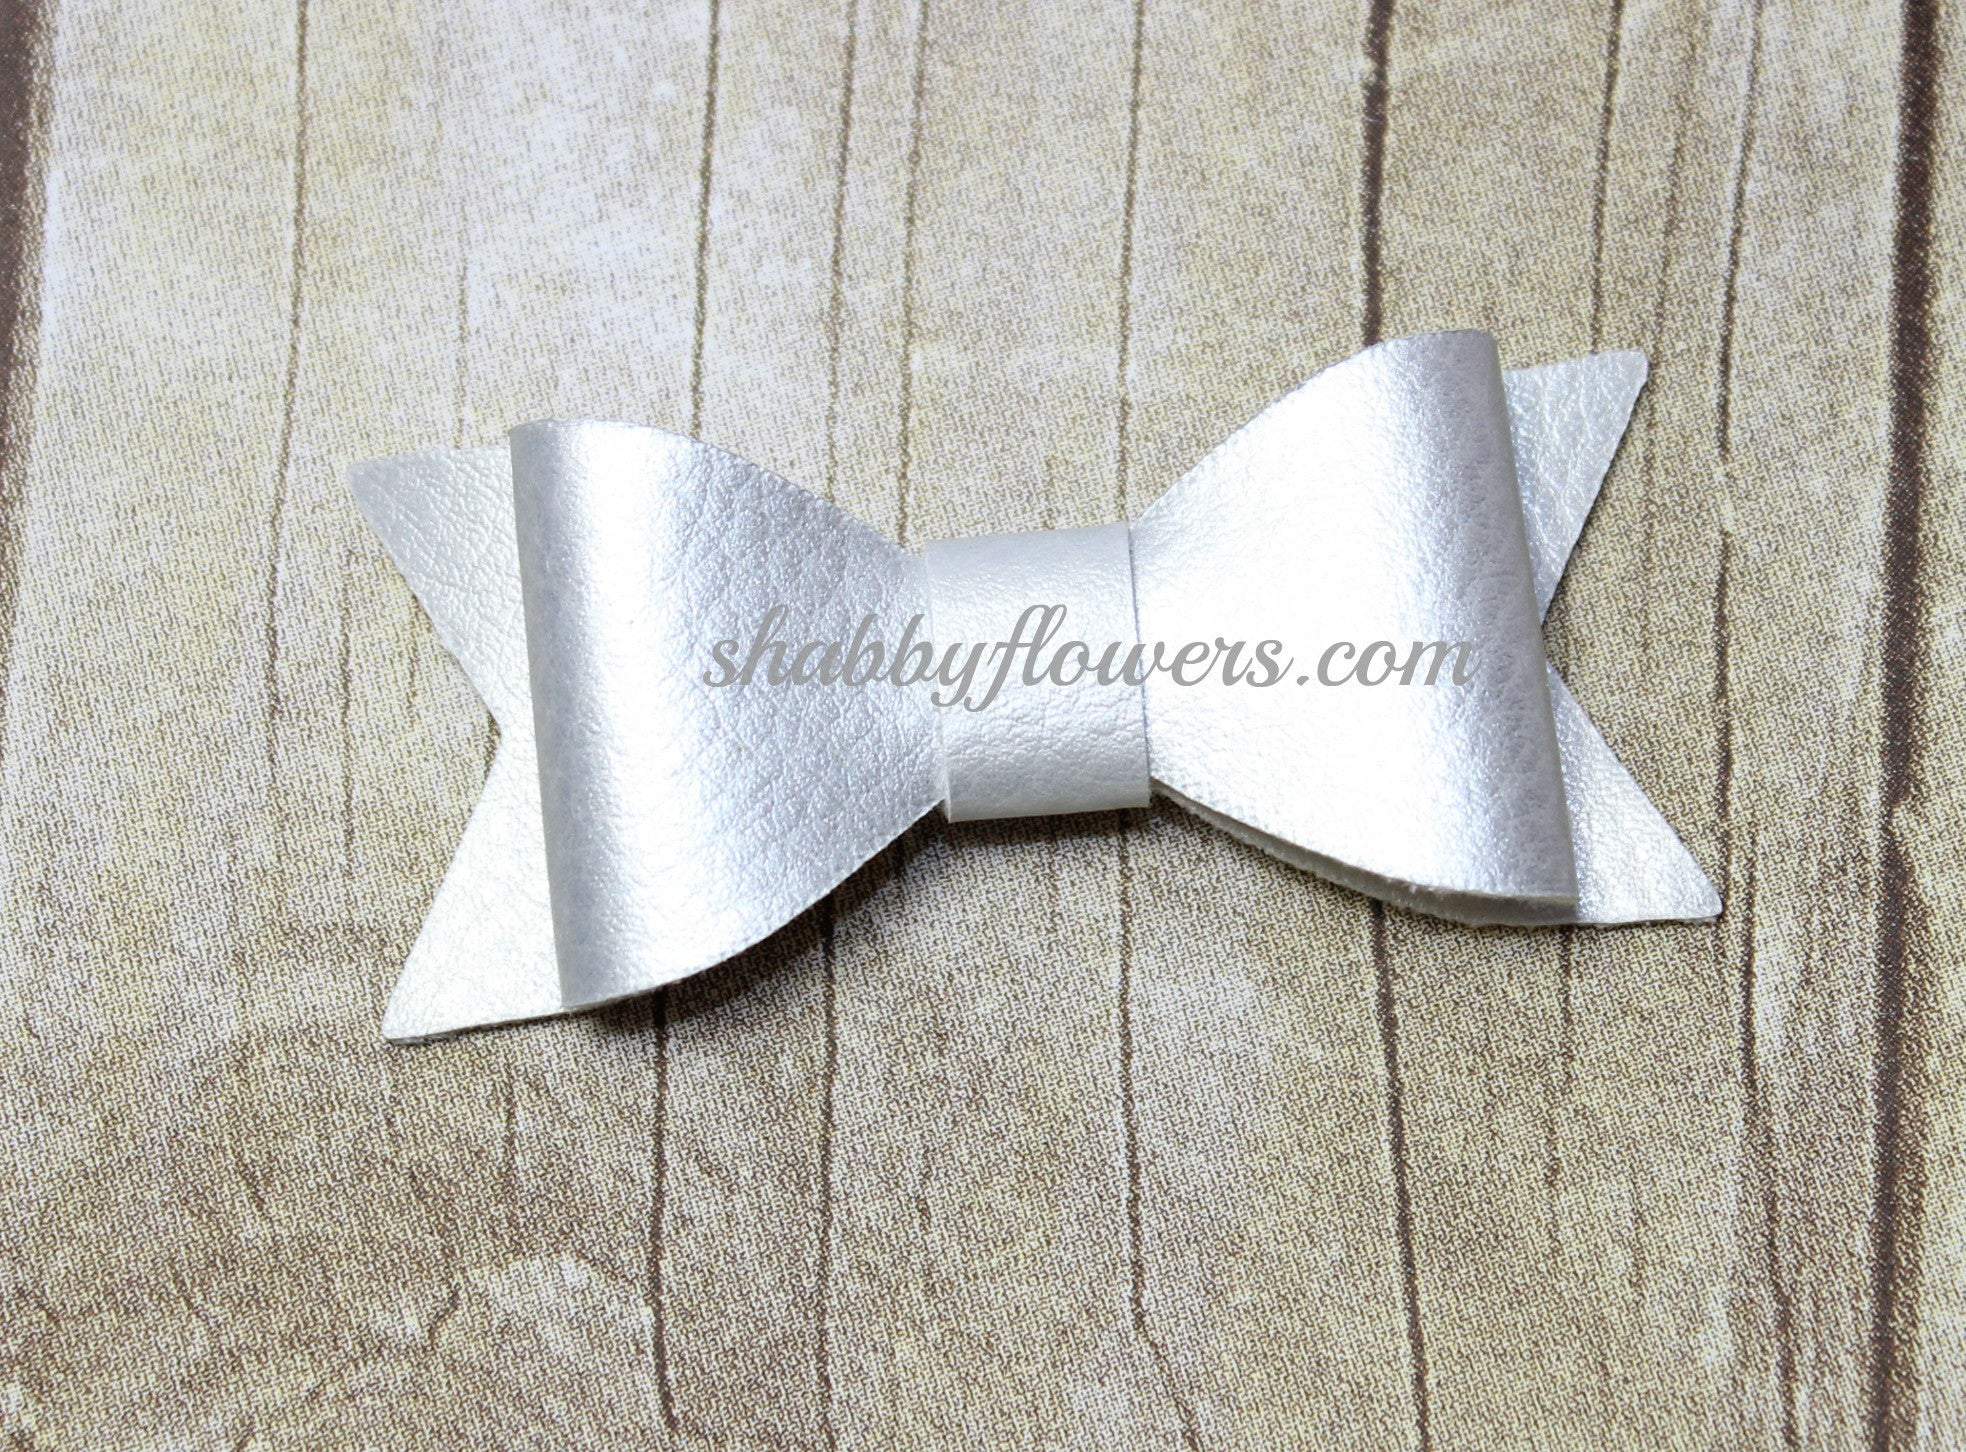 Faux Leather Bow - Silver - shabbyflowers.com